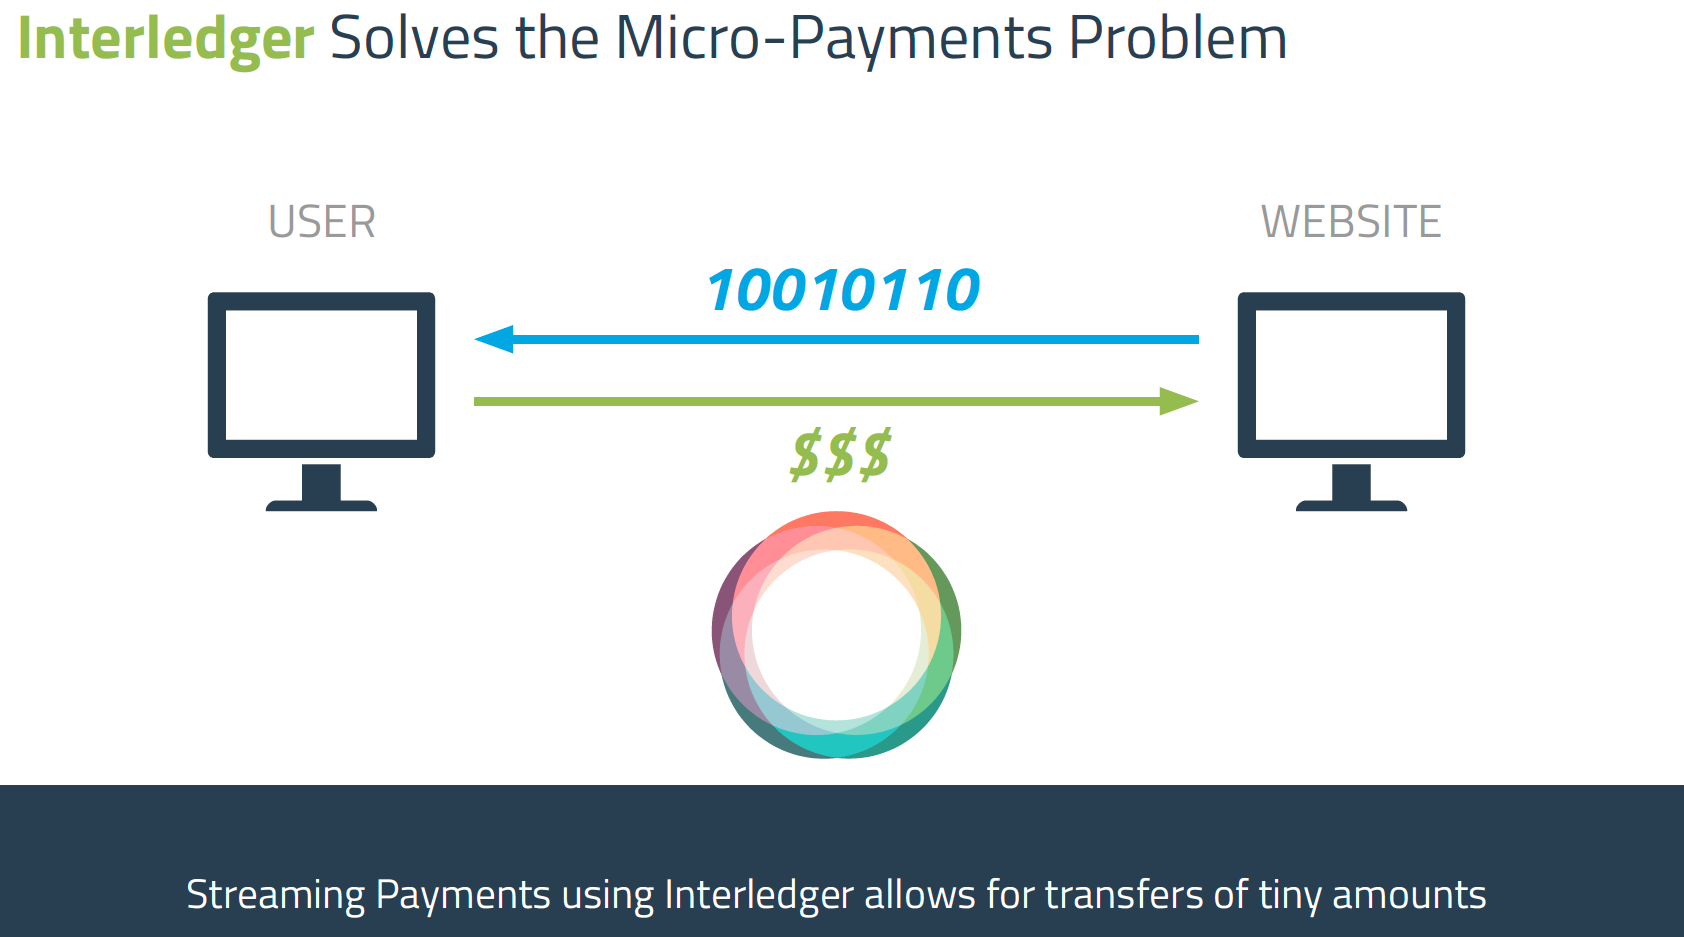 Slide from deck on interledger protocol used for micropayments